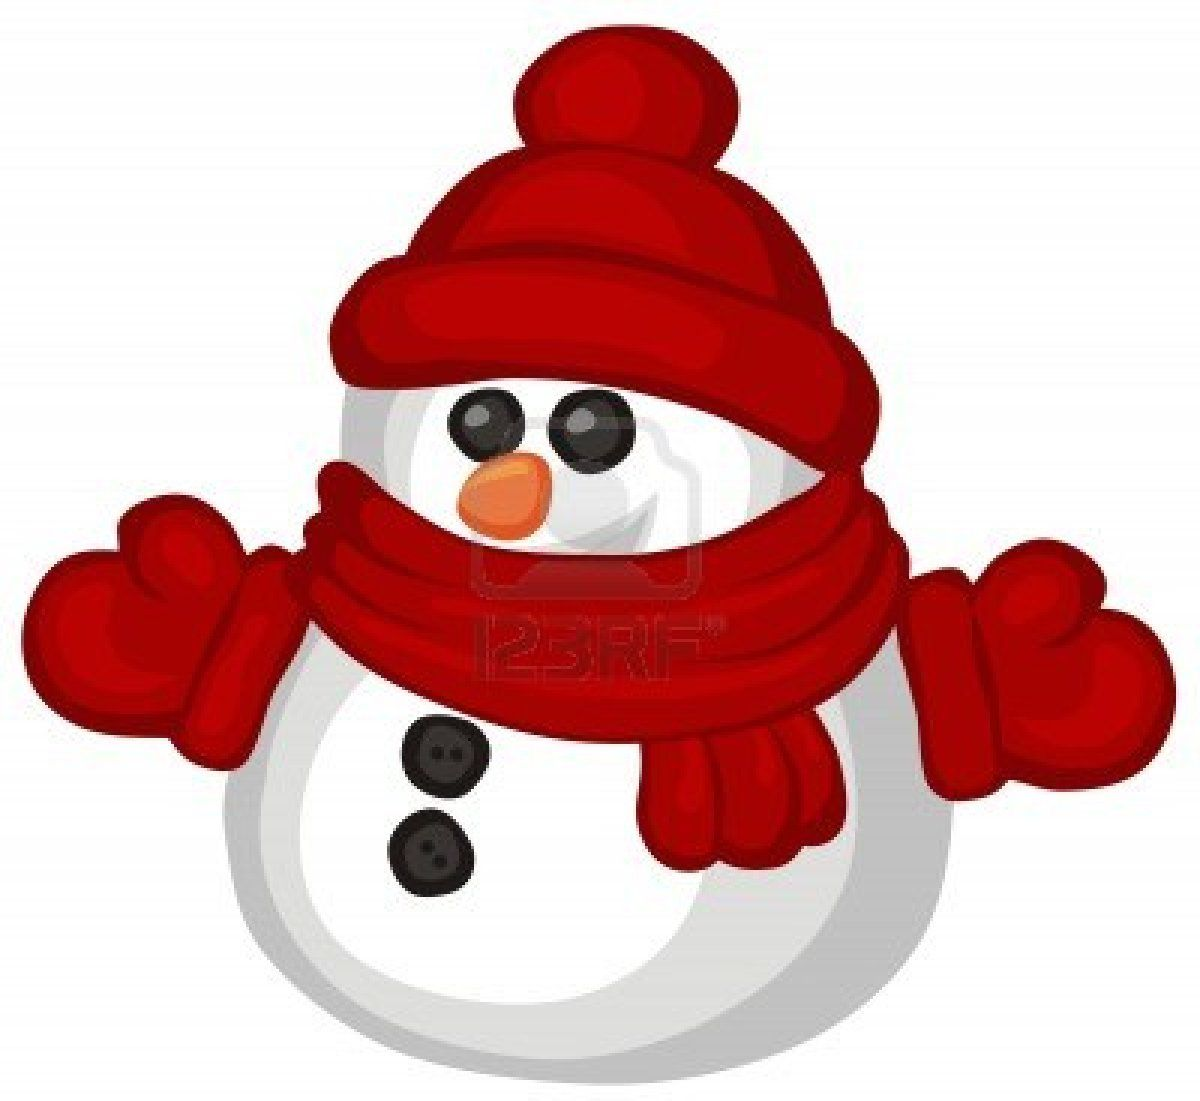 Snowflake clipart cartoon. Funny free how to